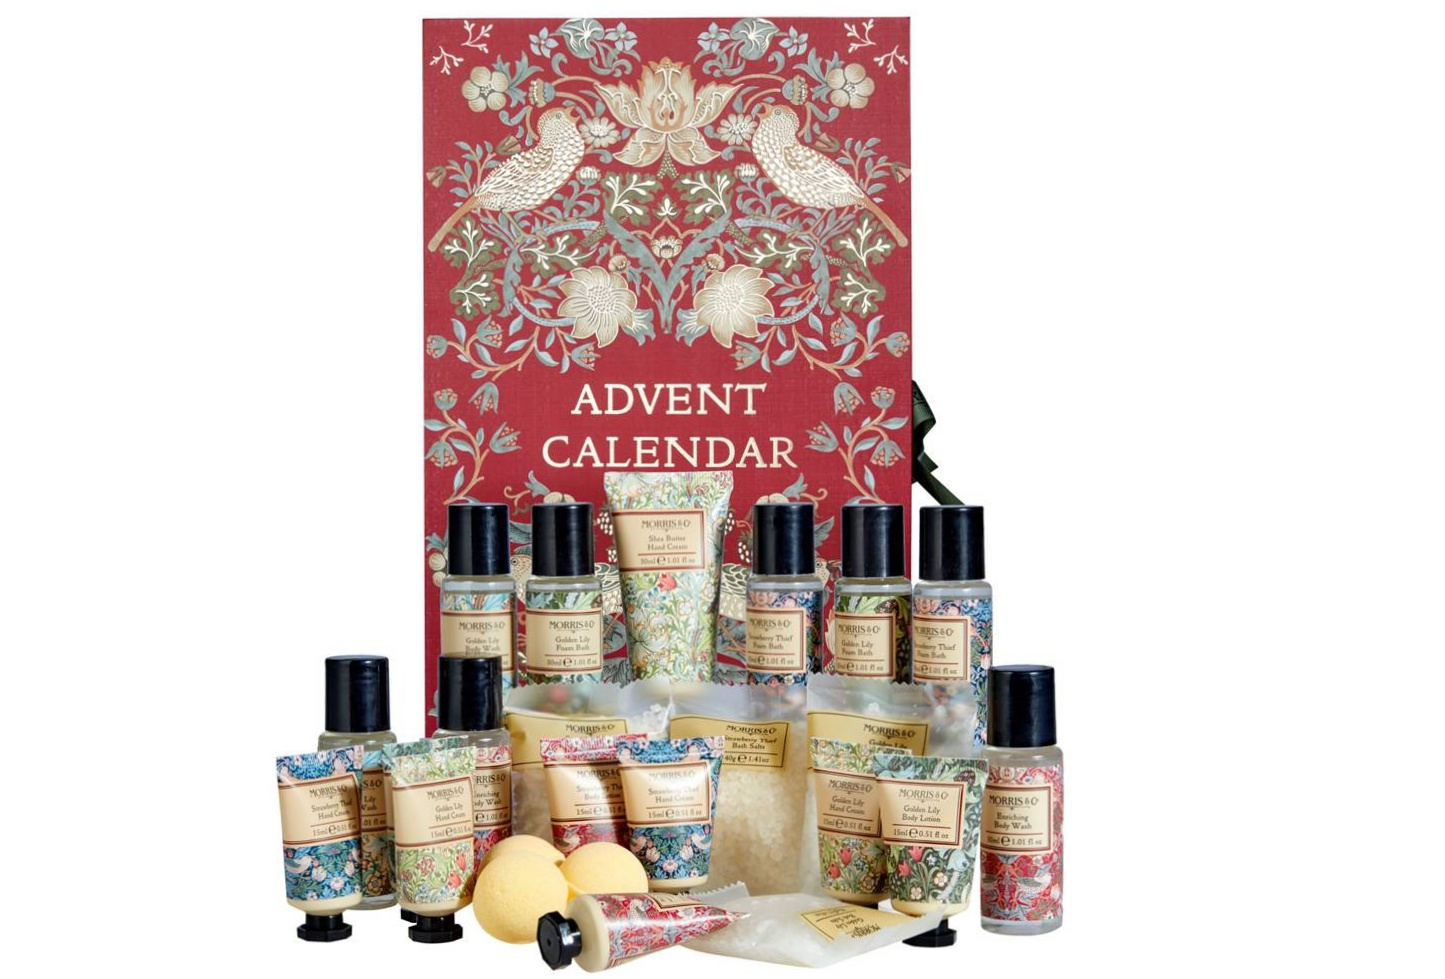 Morris&Co advent calendar 2018 - The LDN Diaries